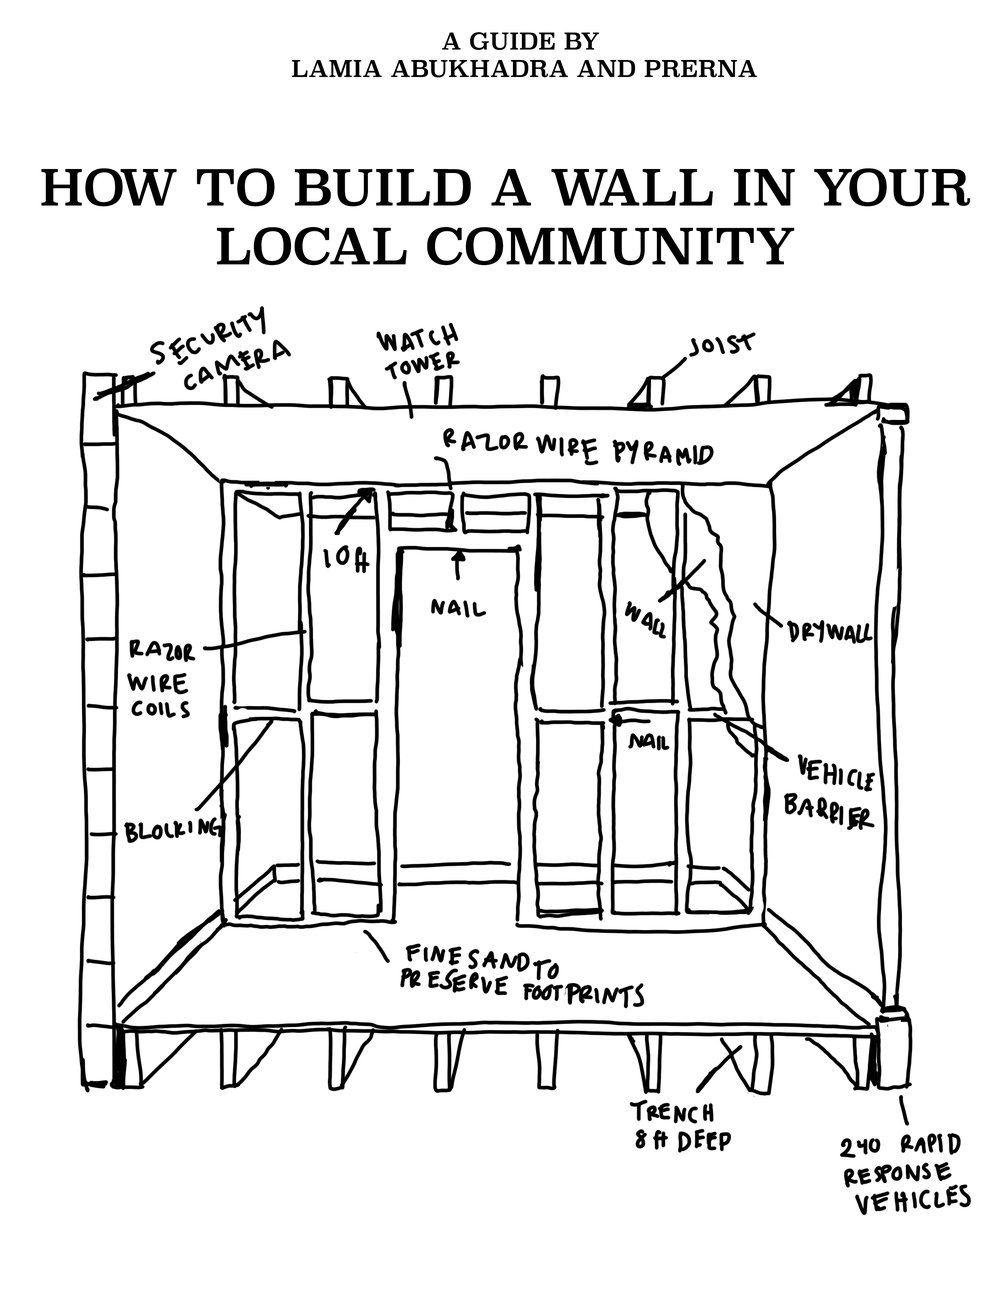 HOW TO BUILD A WALL COVER.jpg